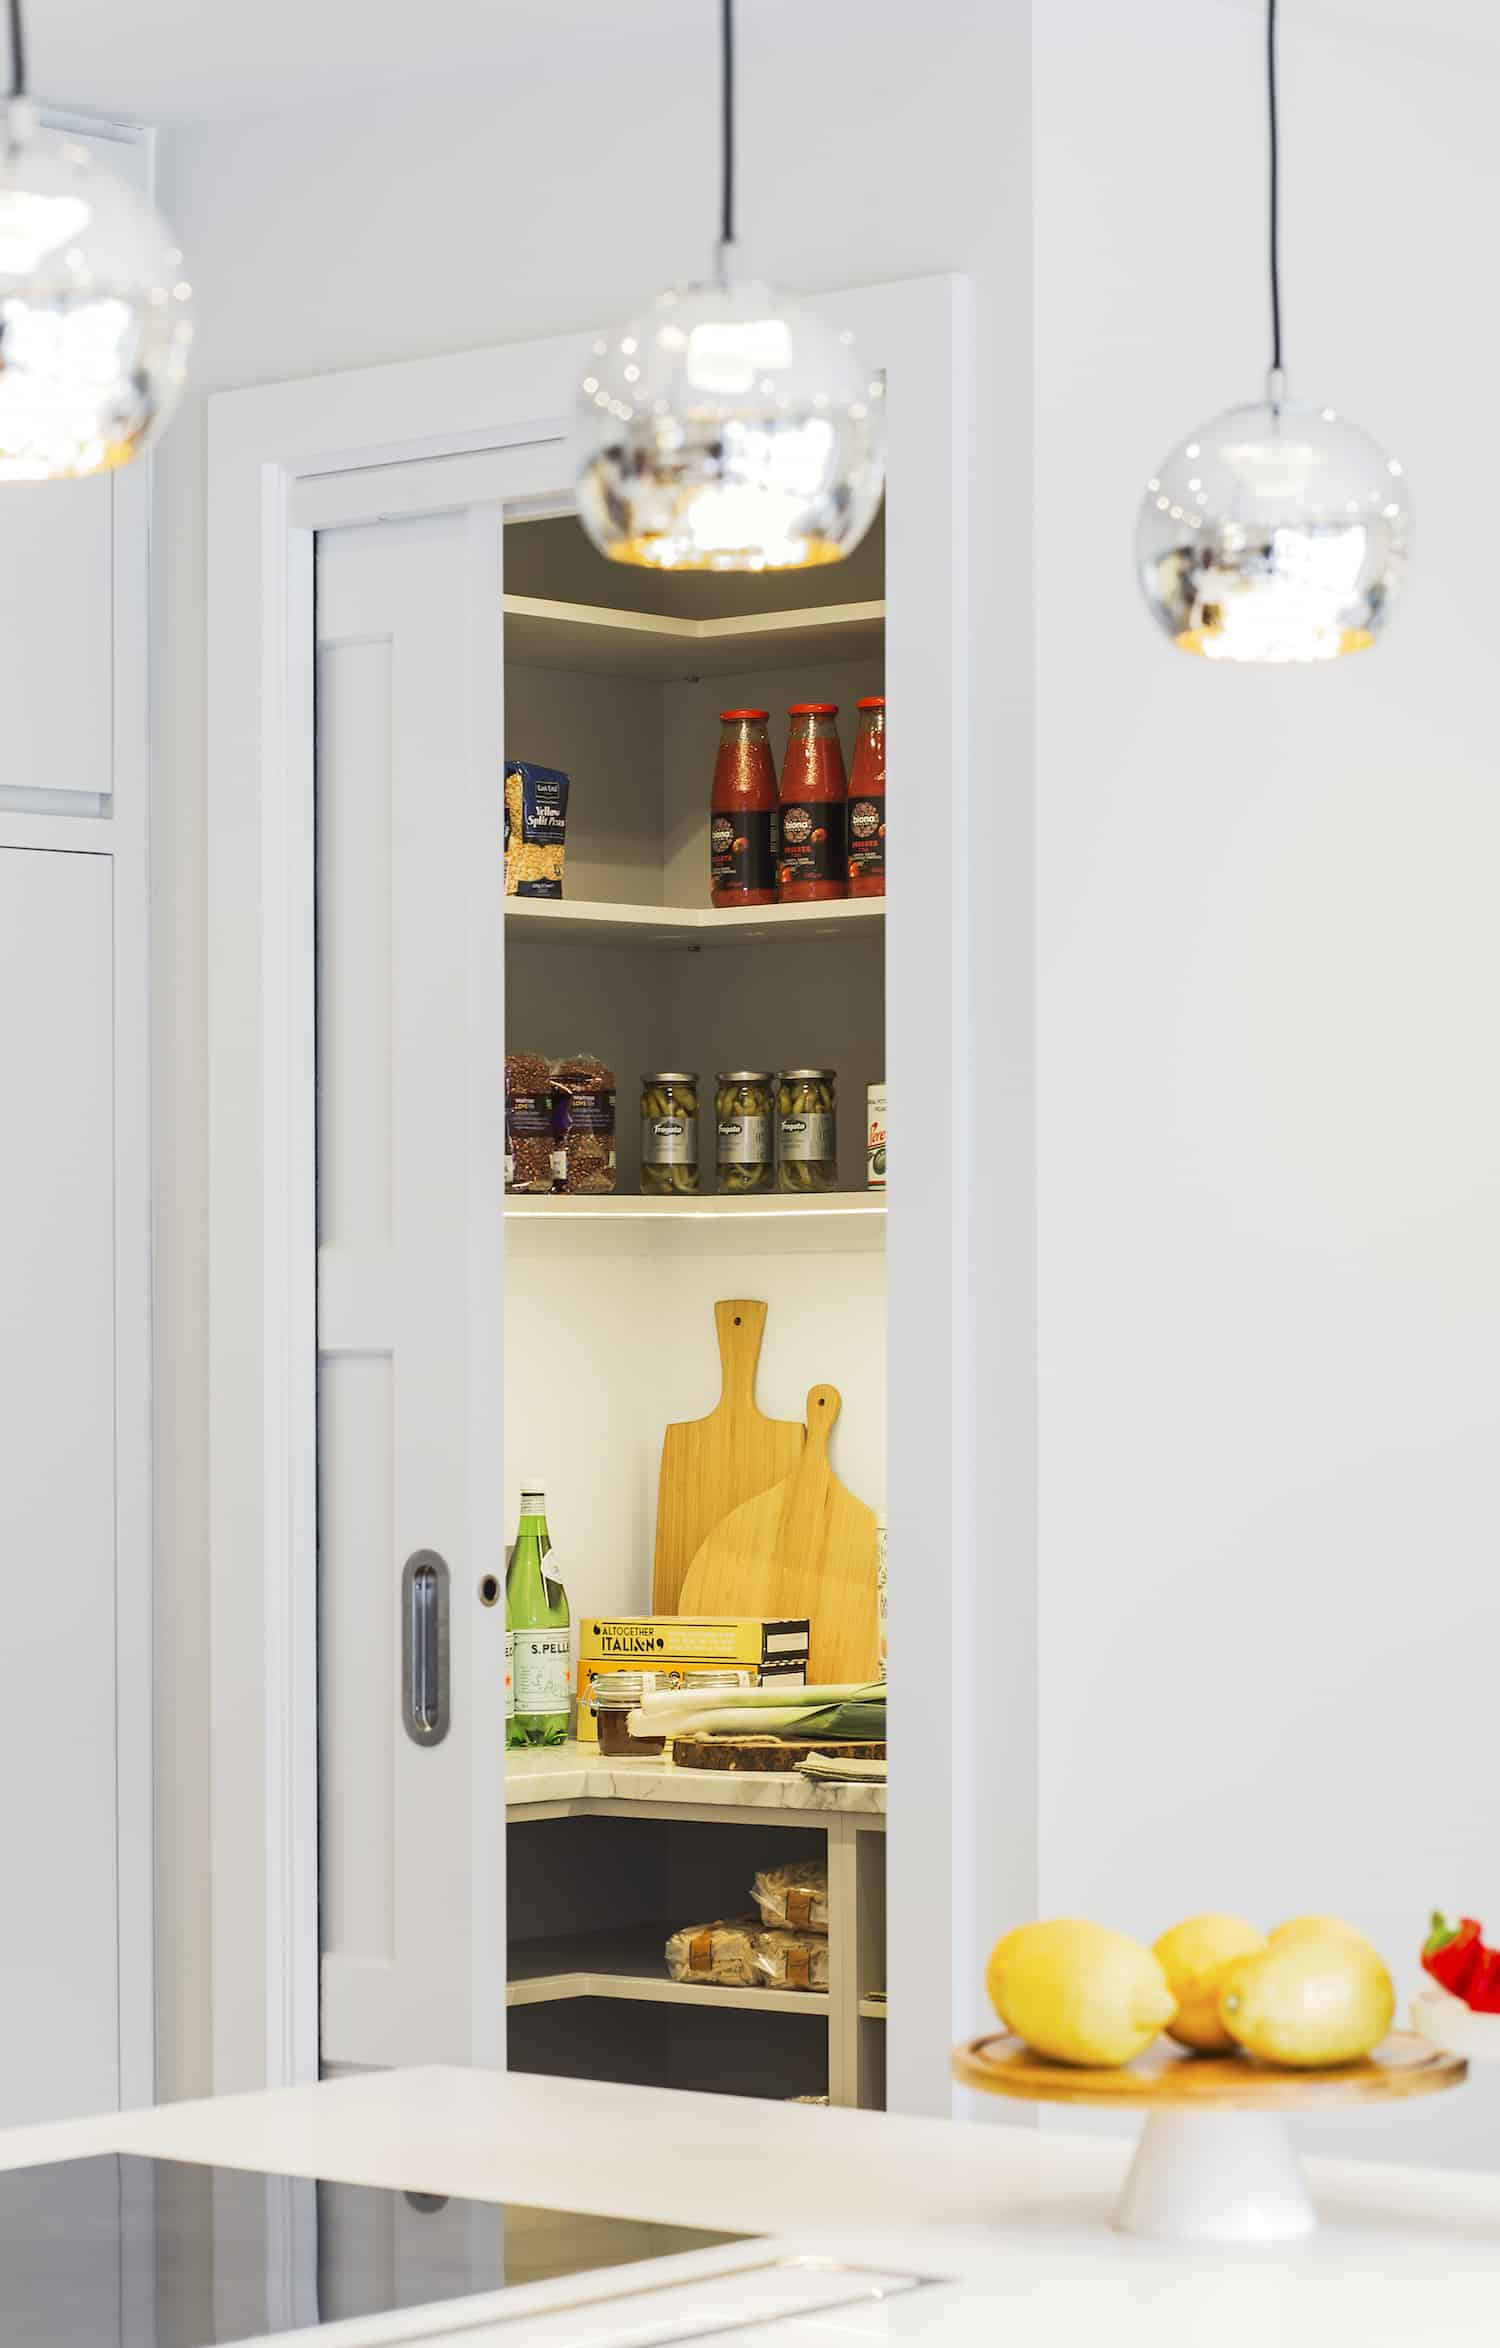 Kitchen storage was a focus in this kitchen design. Here's a small kitchen pantry off the kitchen space.